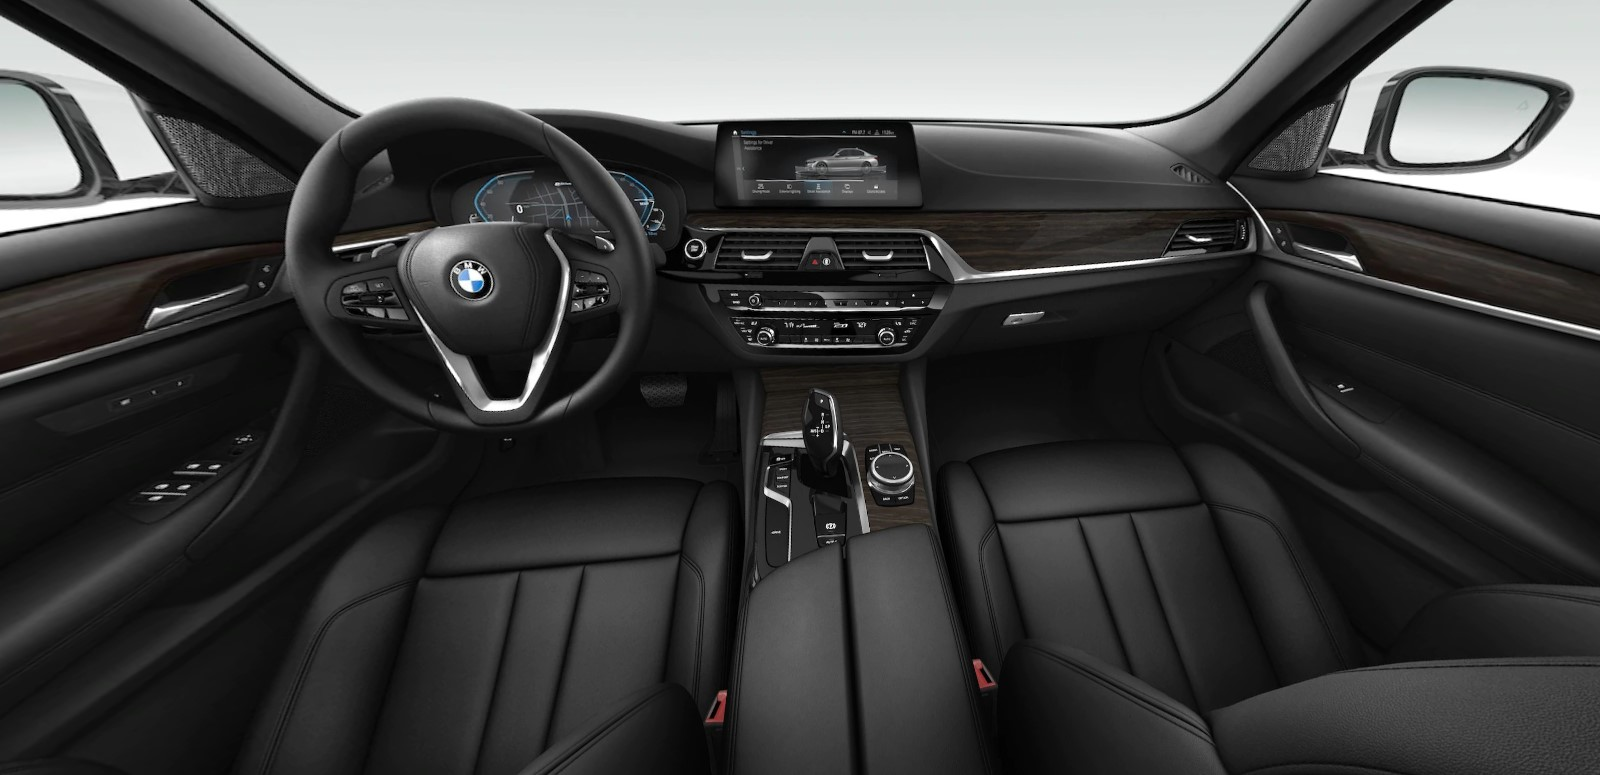 2020 BMW 5 Series 530e Front Interior Dash and Steering Wheel